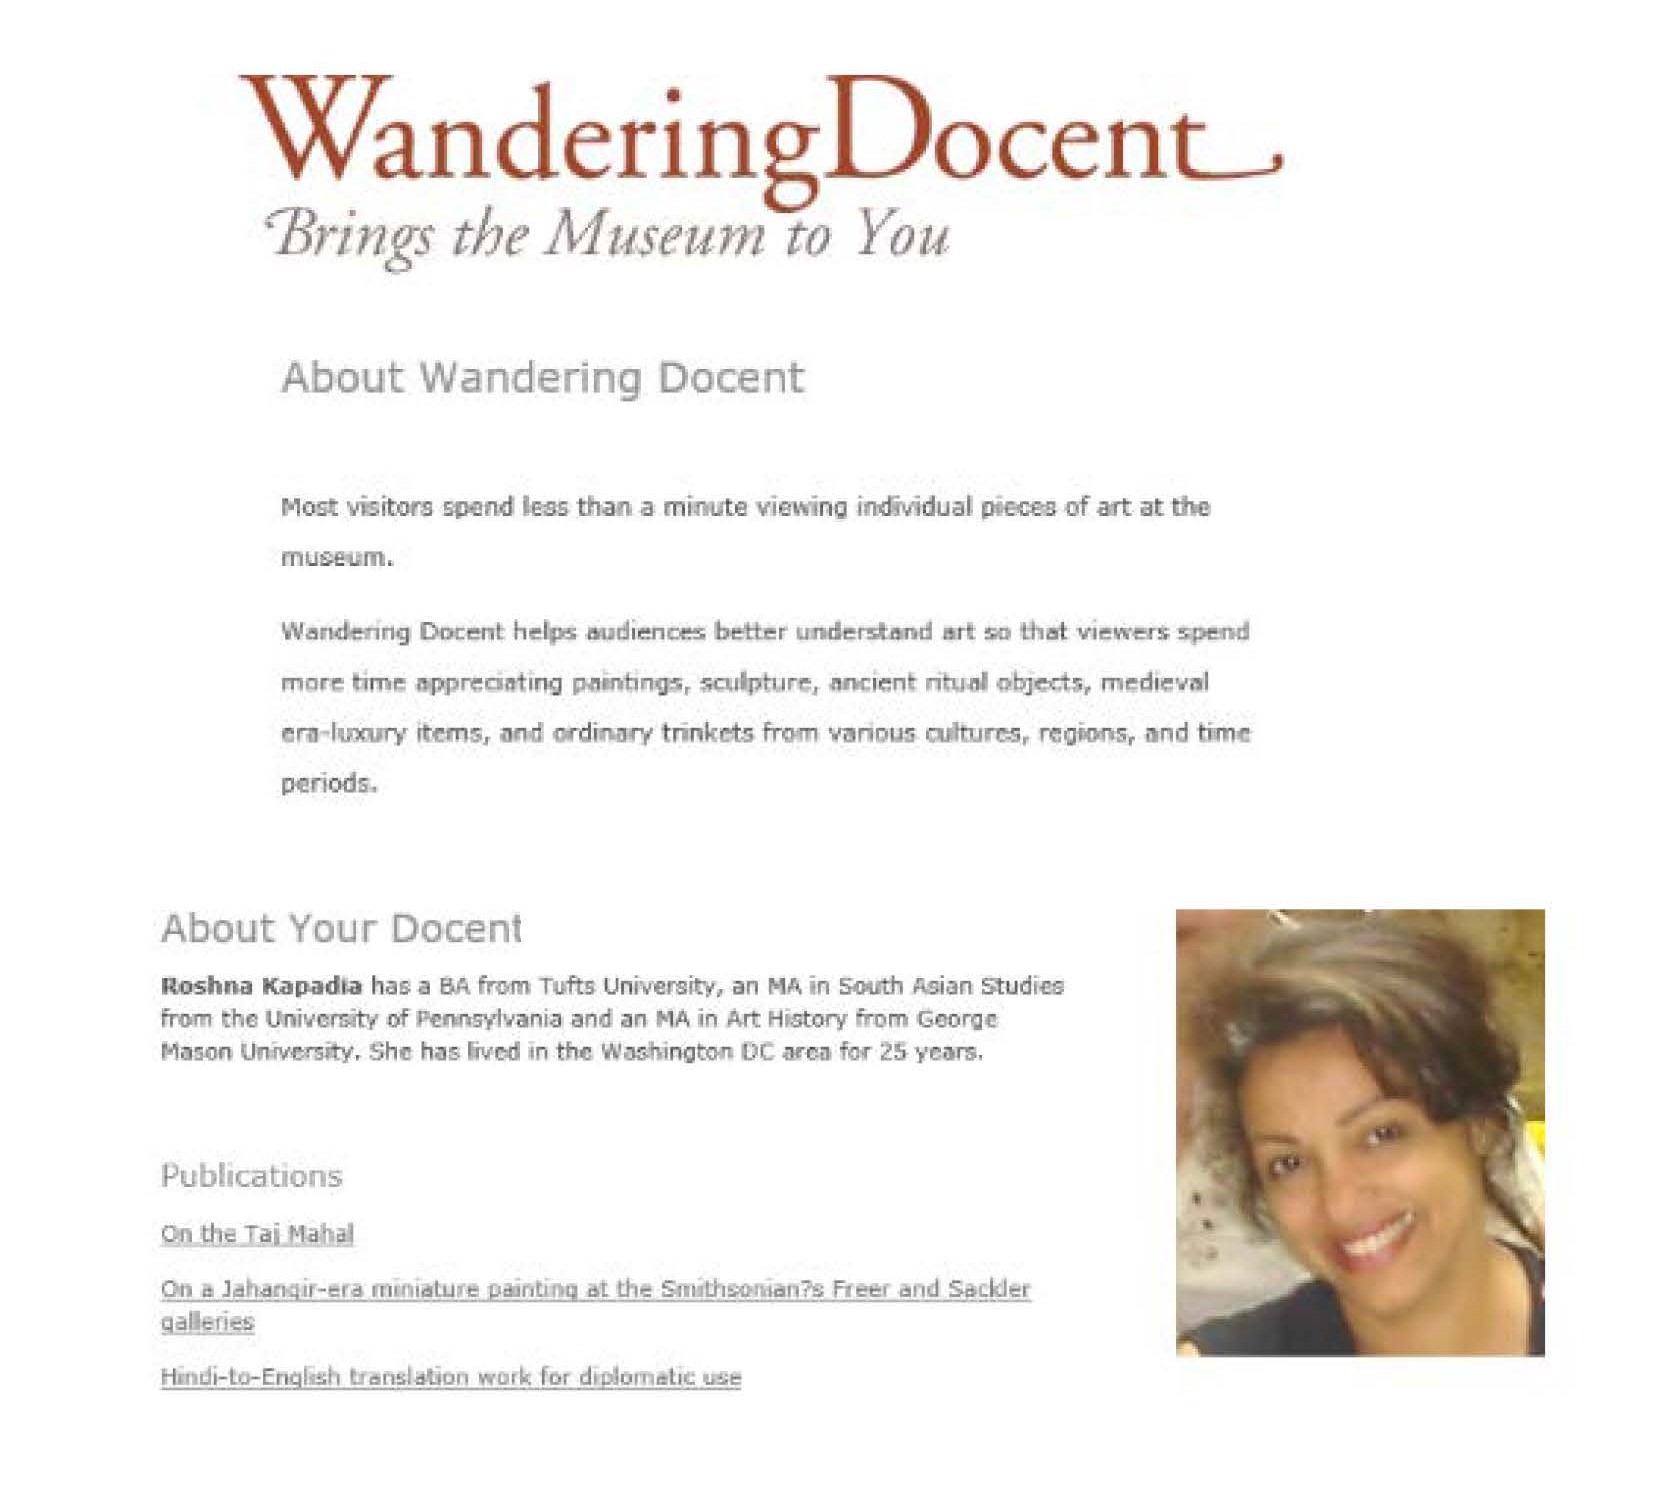 Wandering Docent